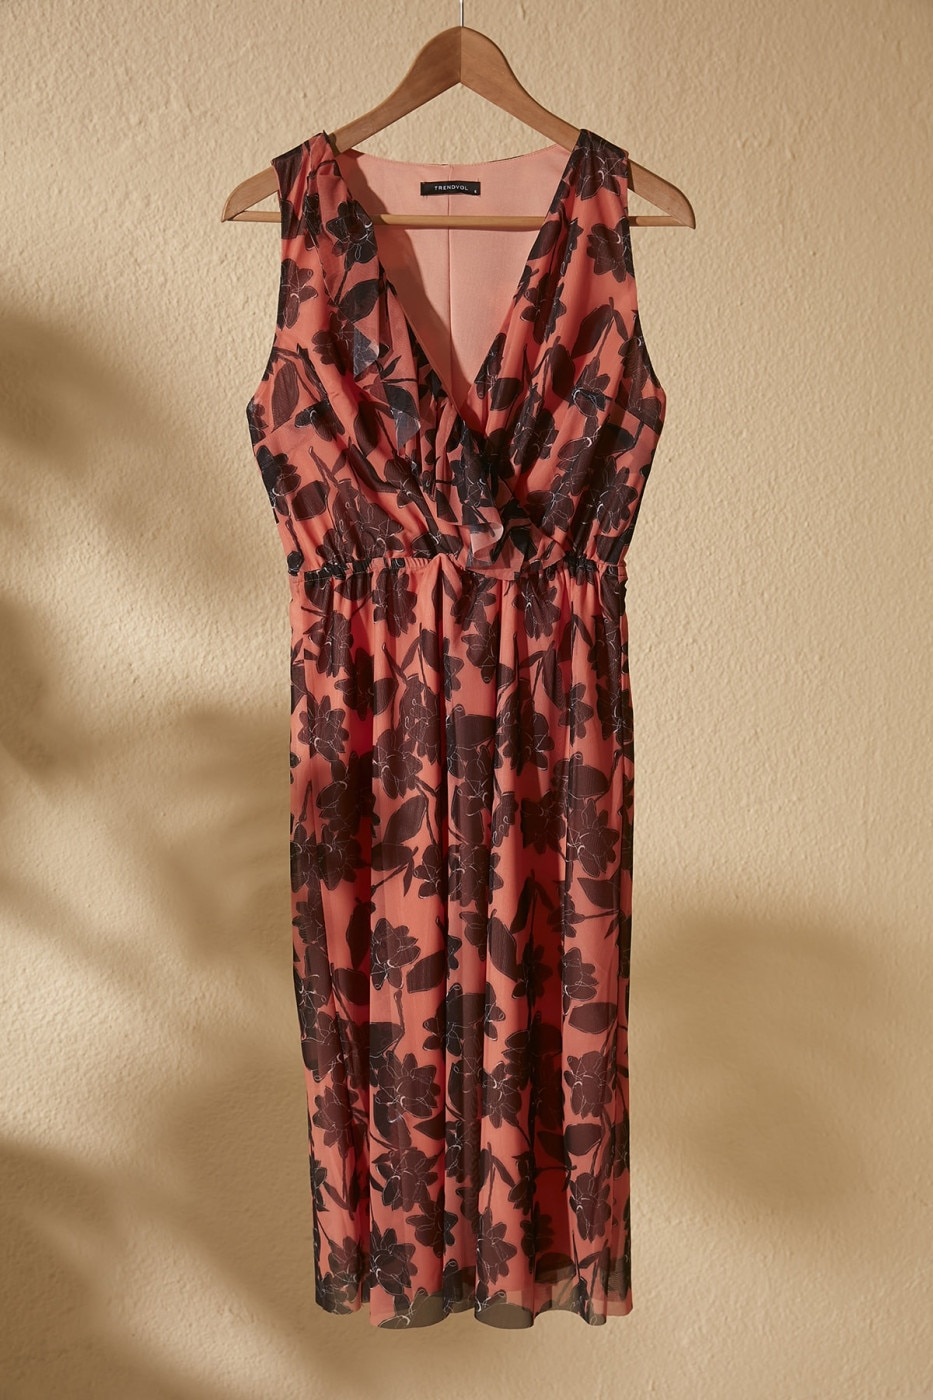 Trendyol Salmon Cruise Neck Line Patterned Knitted Dress